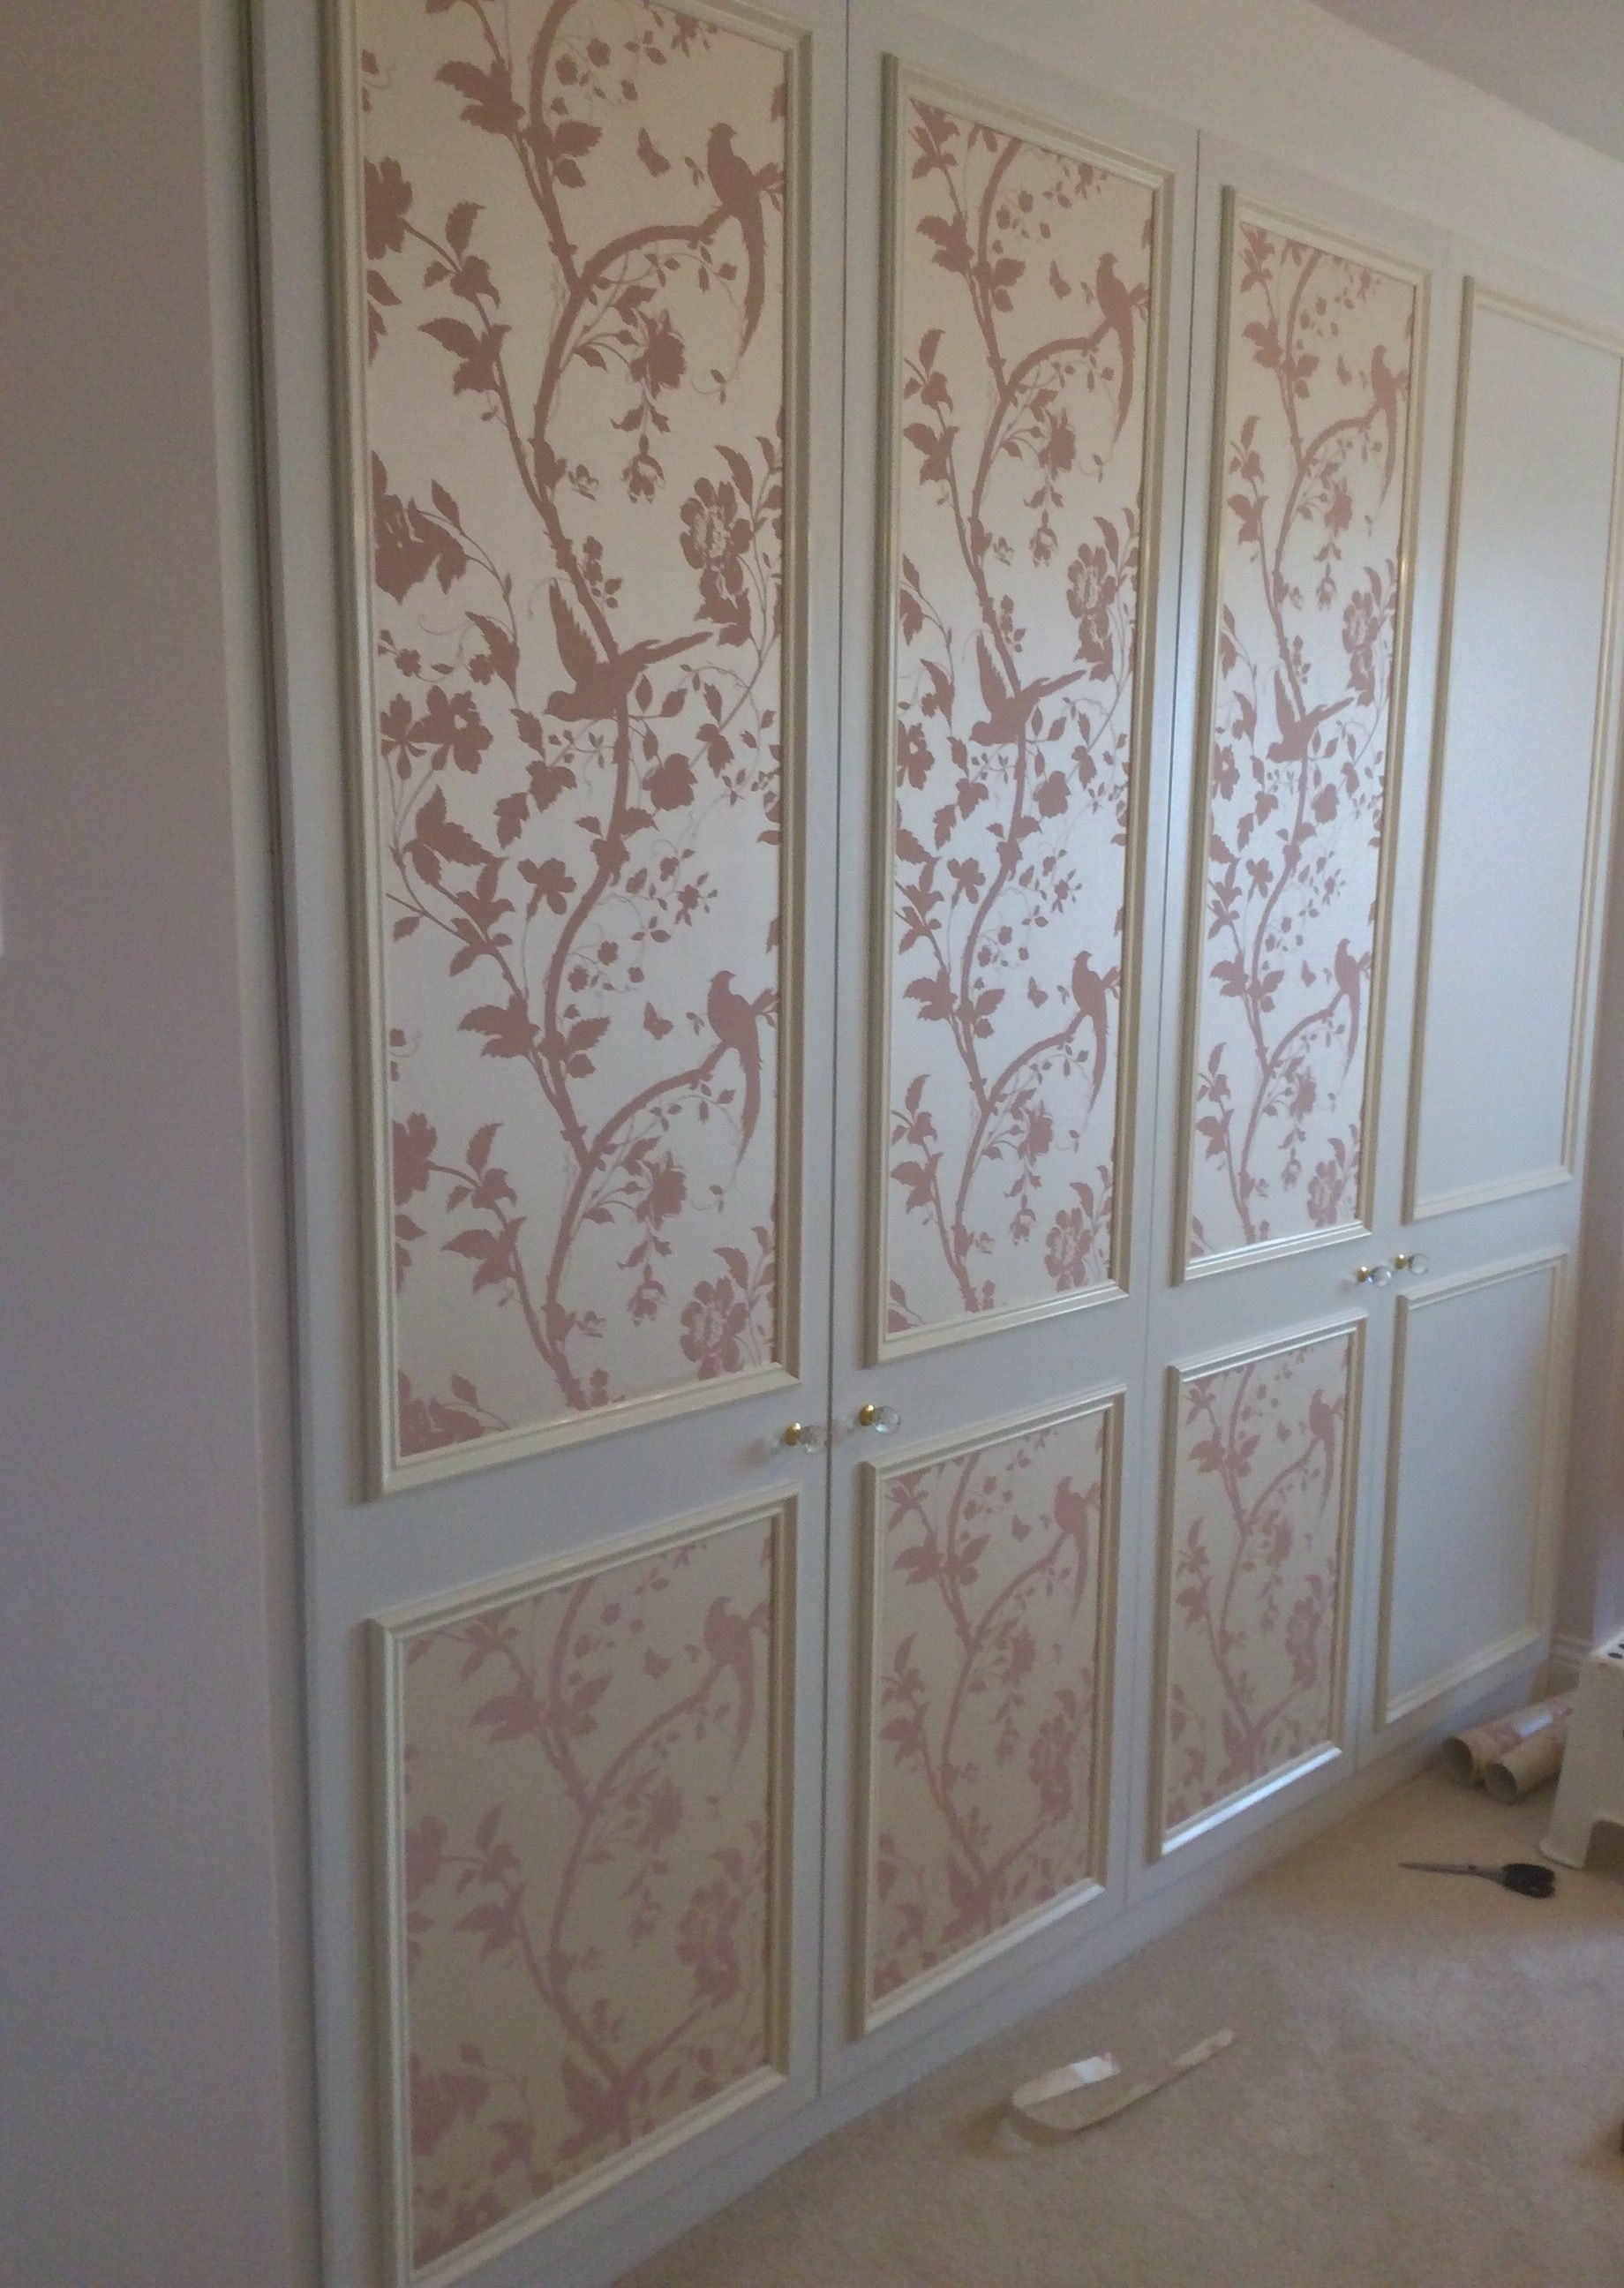 Almost Finished Fitted Wardrobe Doors Given A Feminine New Look With Laura Ashley S Orienta Cupboard Doors Makeover Fitted Wardrobe Doors Wardrobe Doors